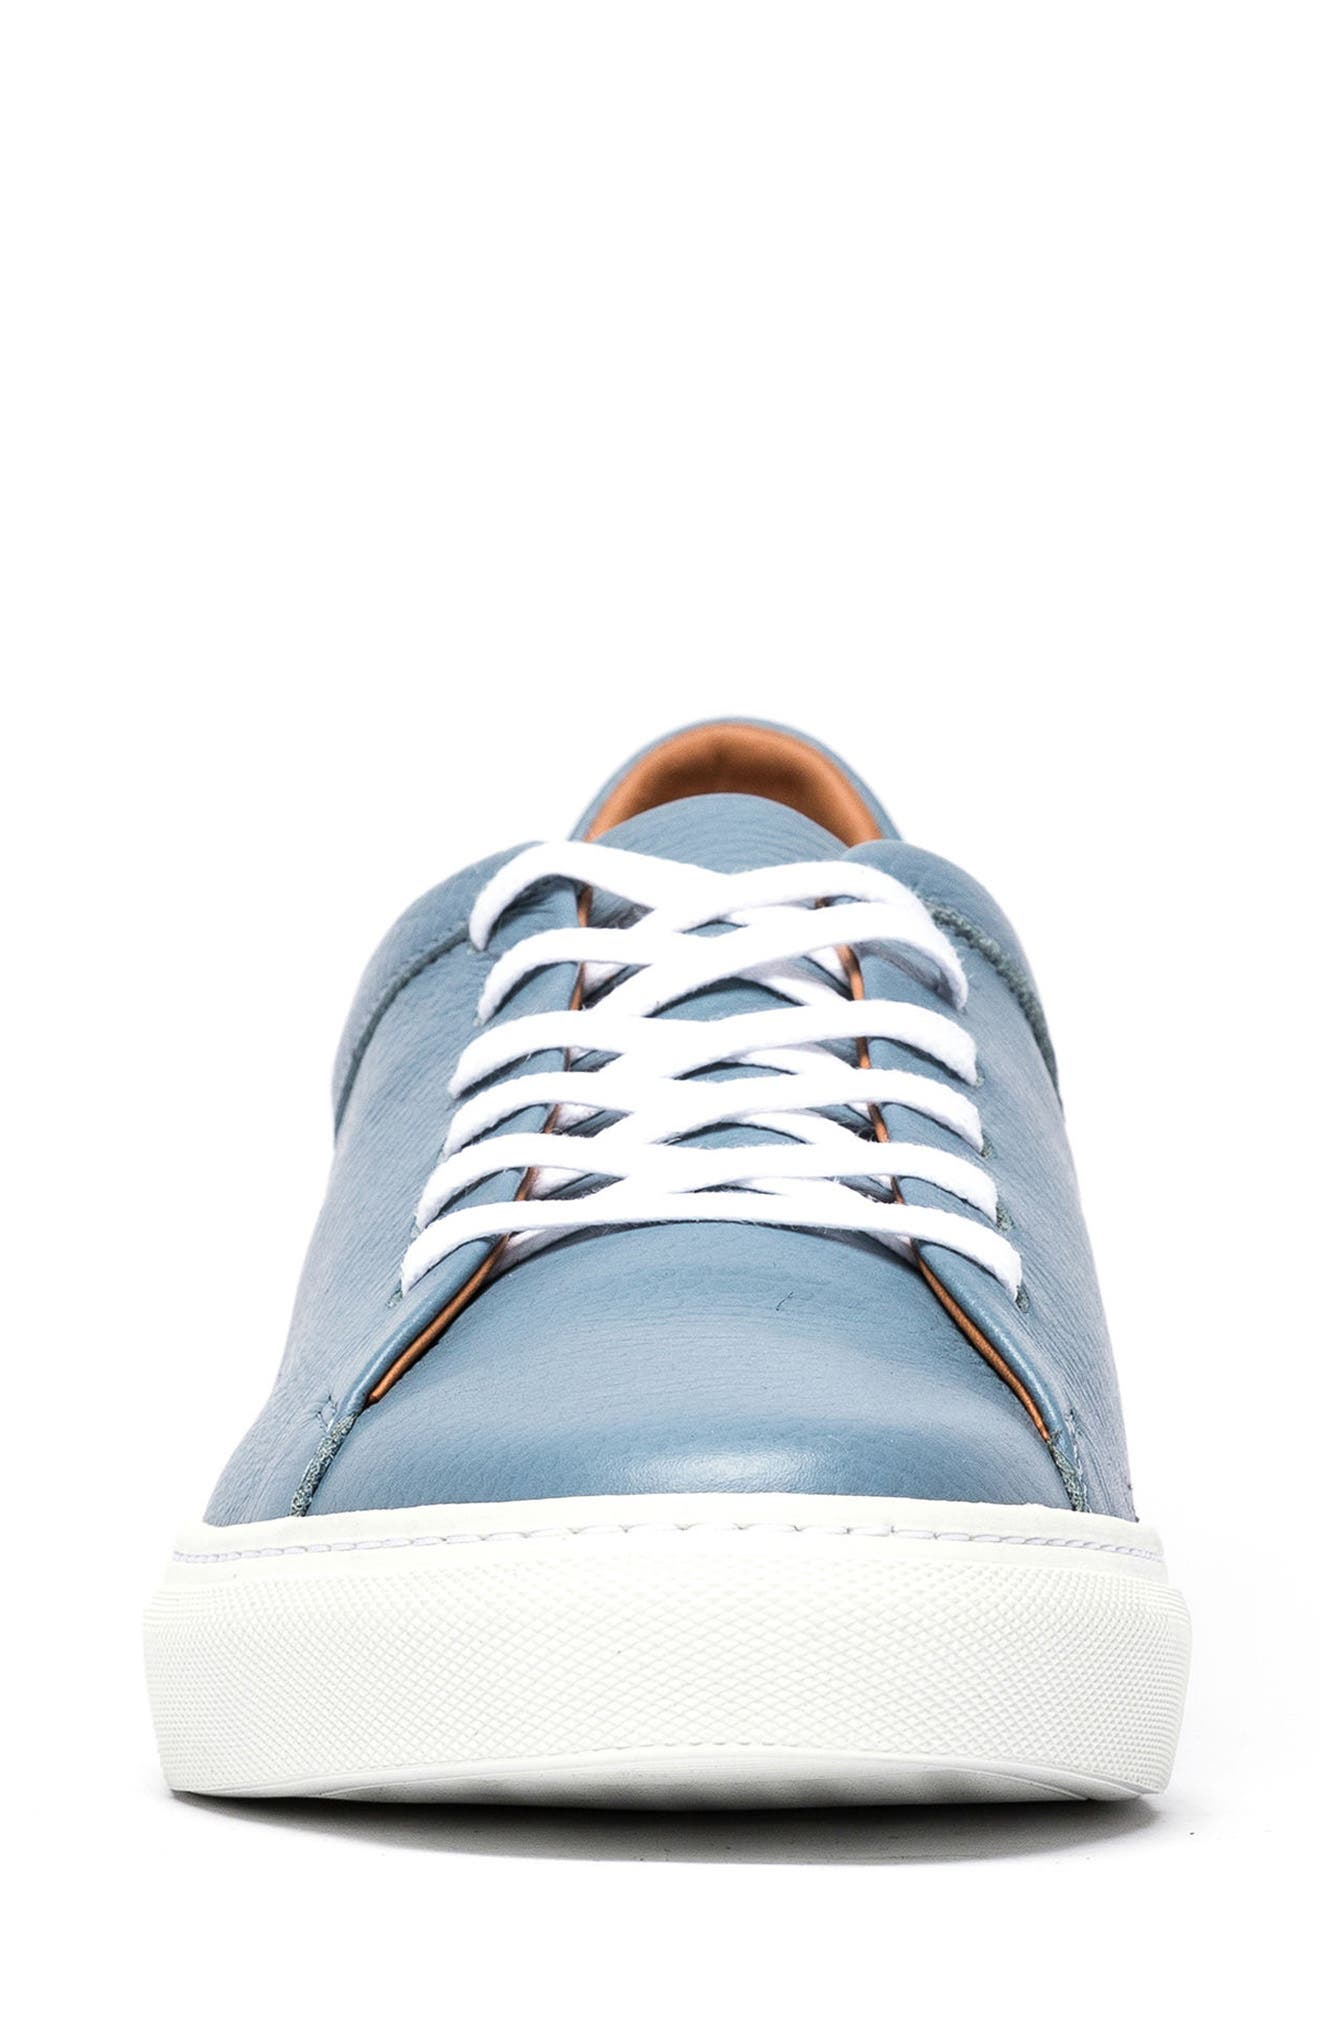 Windemere Sneaker,                             Alternate thumbnail 4, color,                             Sky Blue Leather